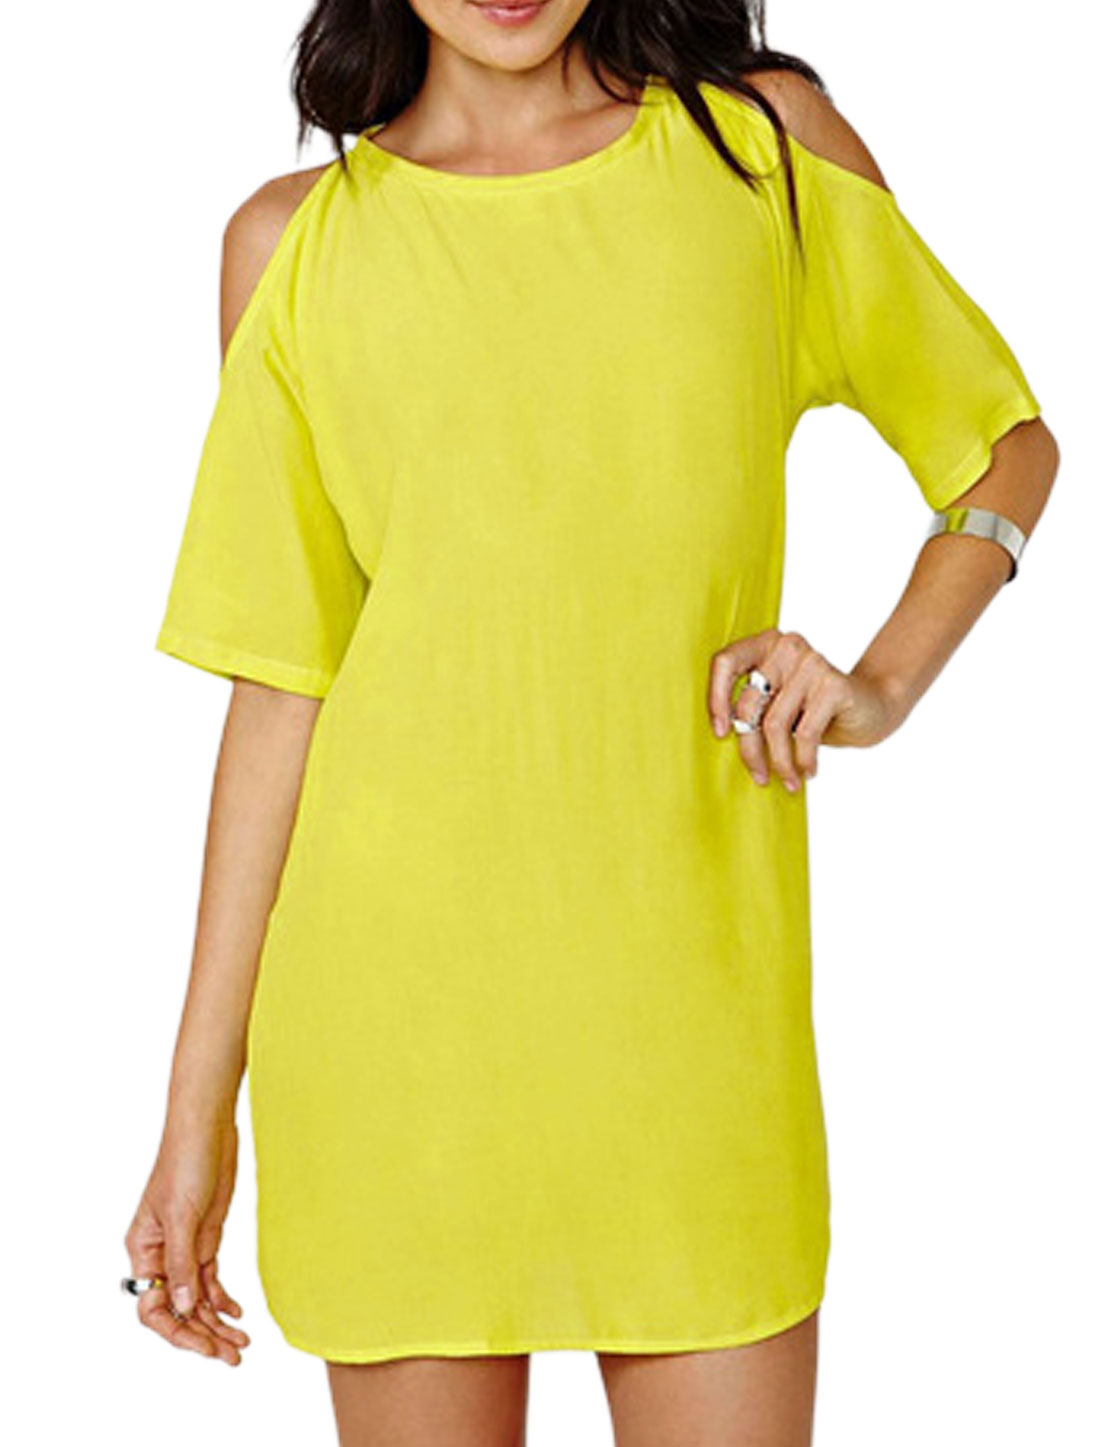 Women Round Neck Cut Out Shoulder Loose Casual Chiffon Dresses Lemon S